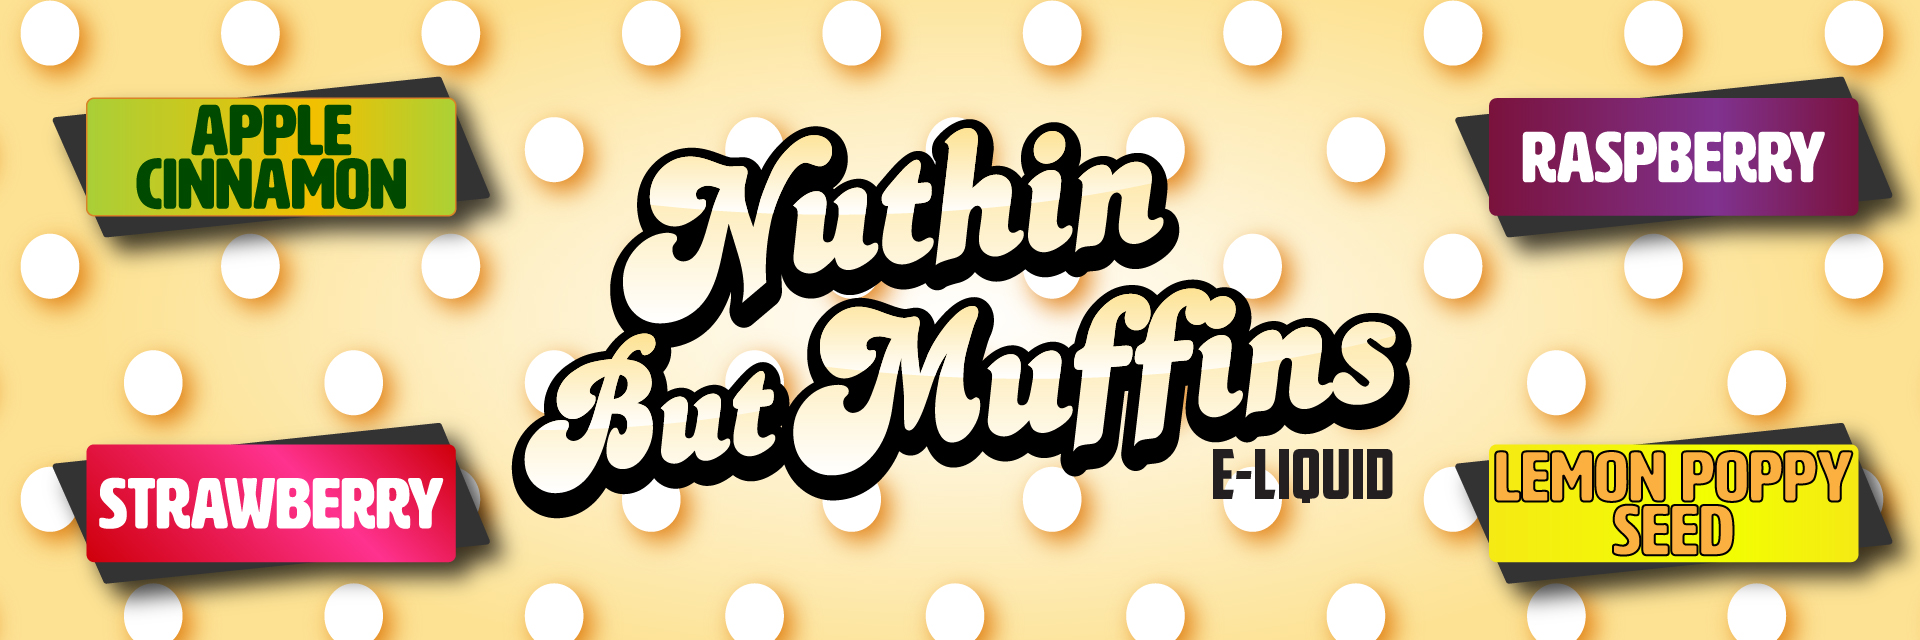 Flavor Vapors | Nuthin But Muffins